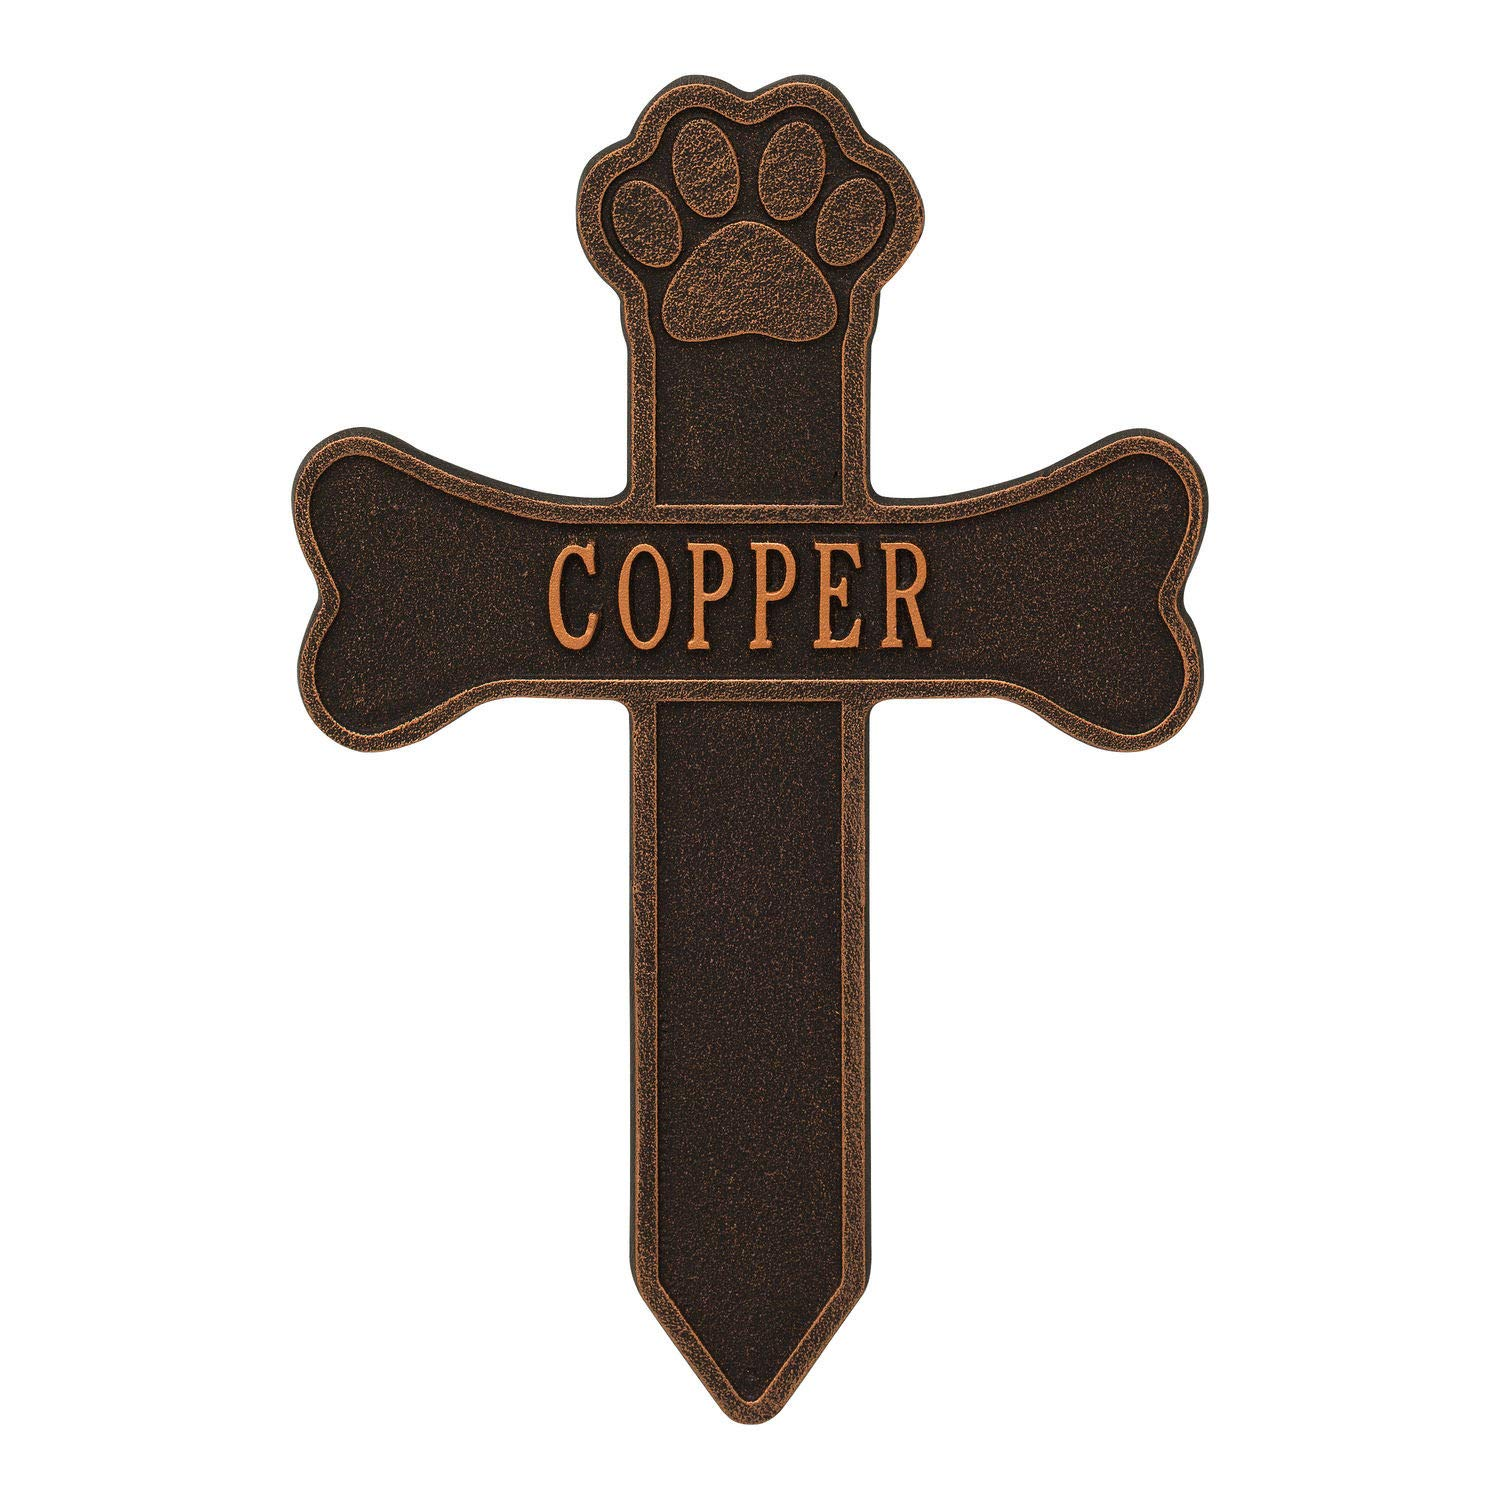 Whitehall Dog Paw and Bone Personalized Pet Memorial Cross Yard Sign - Remembrance Grave Marker and Garden Stake - Oil Bronze